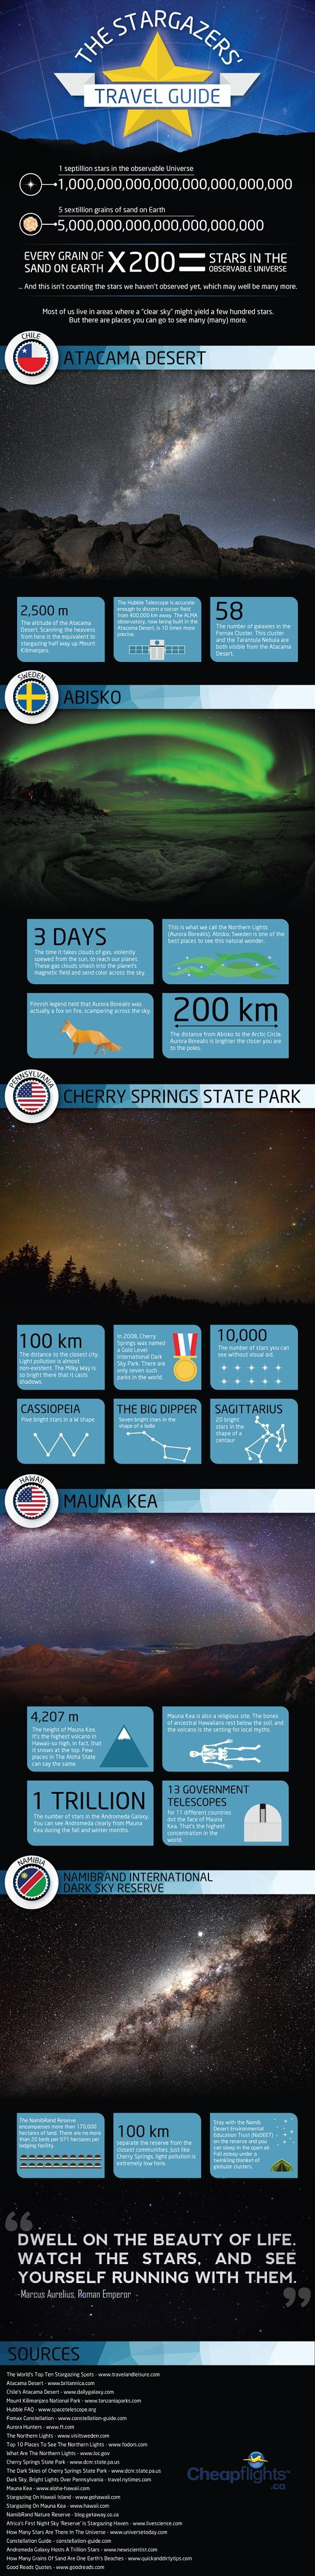 The Stargazers Travel Guide (Infographic)